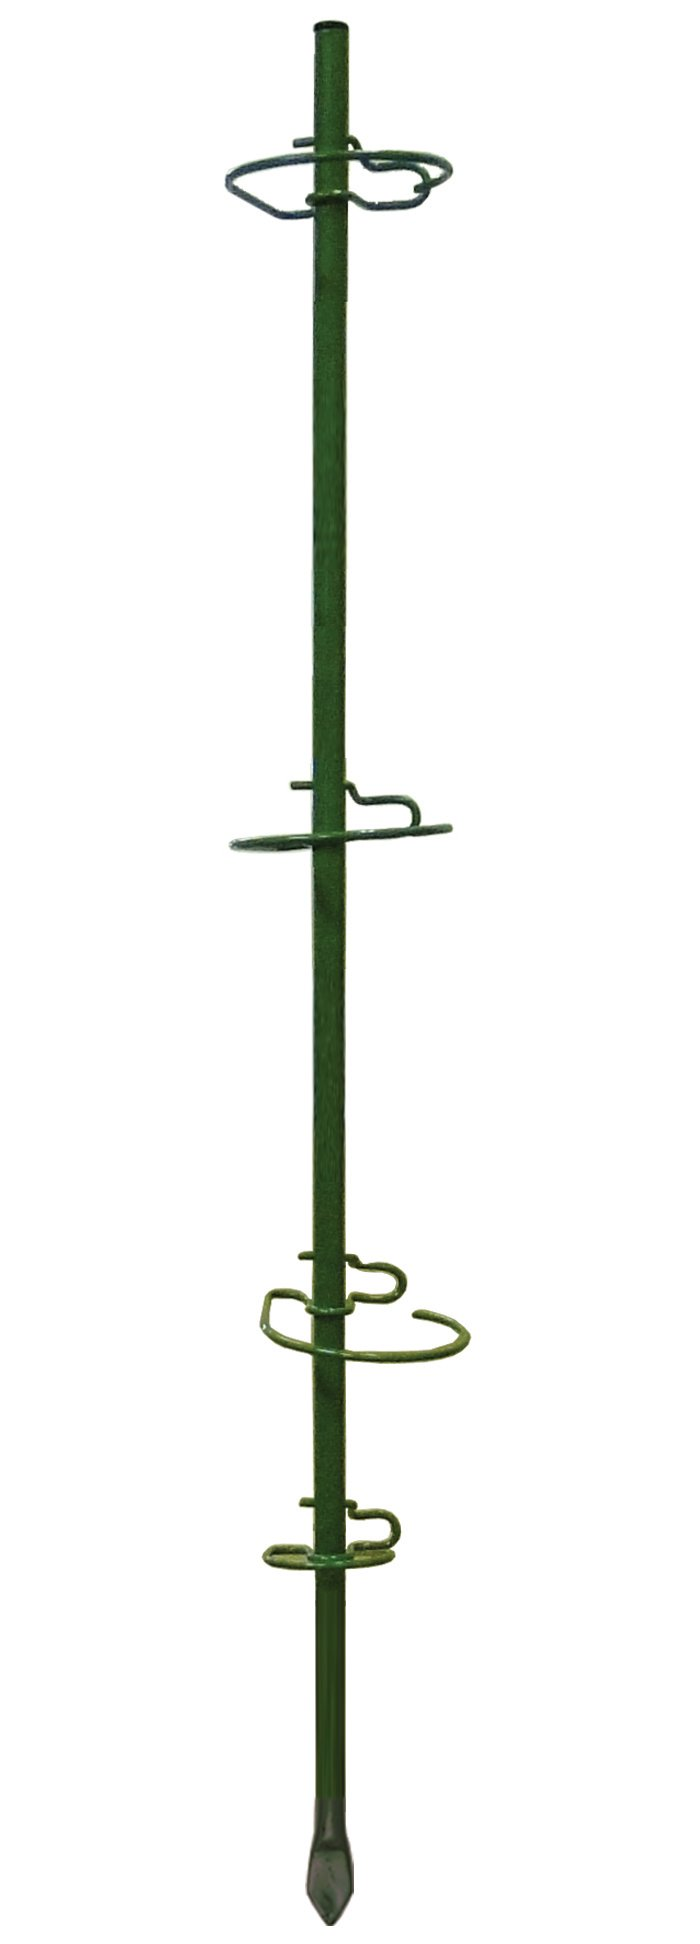 MultiStake Set - Tomato Stake - Vine Plants - Vegetable holder - Vertical Gardening - Tomato Planting - Garden Tool - Gardening Product - Ground Stake - Outdoor Goods - Lawn and Garden Supplies - Multi Stake